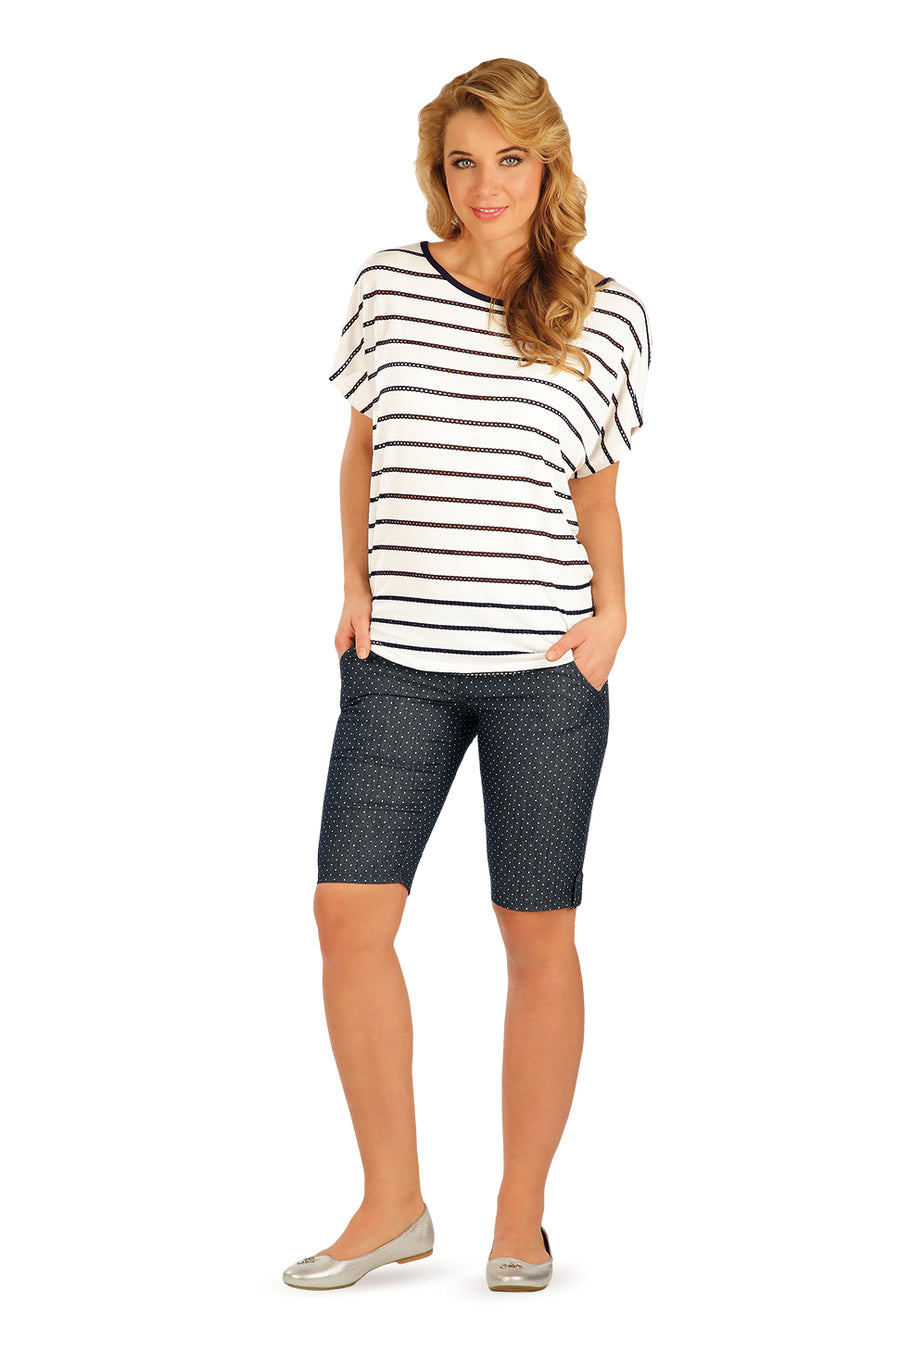 Butterfly Sleeves Tee With Perforated Stripes